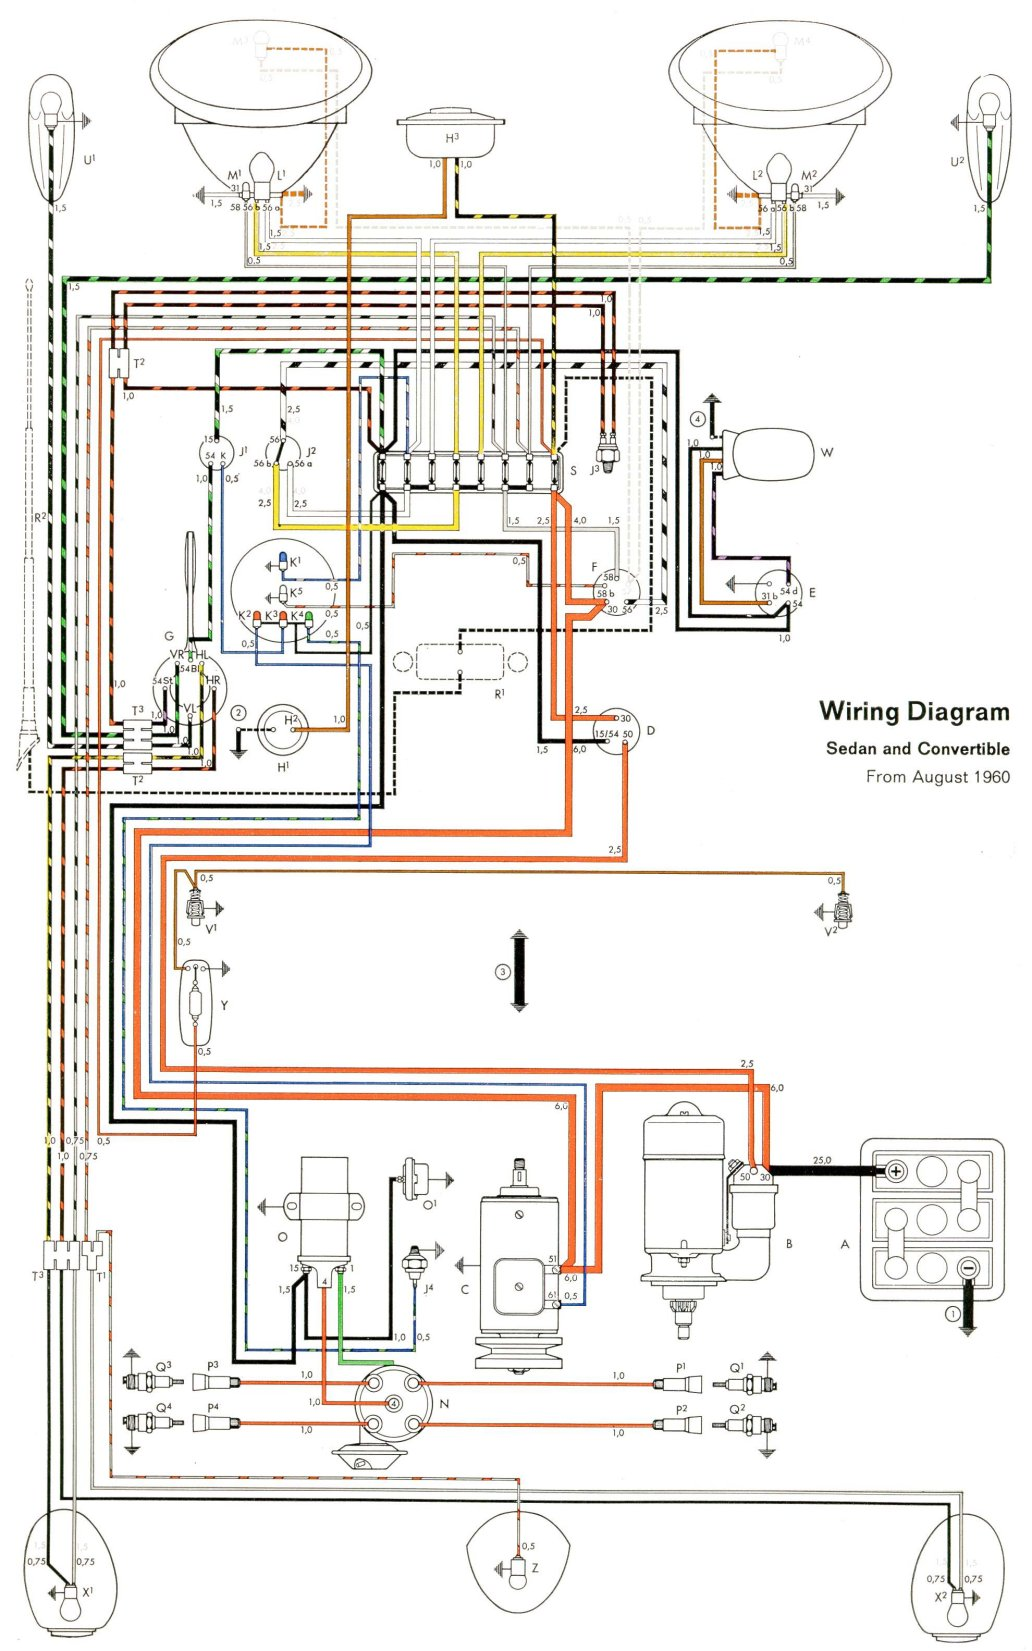 bug_61 thesamba com type 1 wiring diagrams 1971 volkswagen super beetle wiring diagram at panicattacktreatment.co